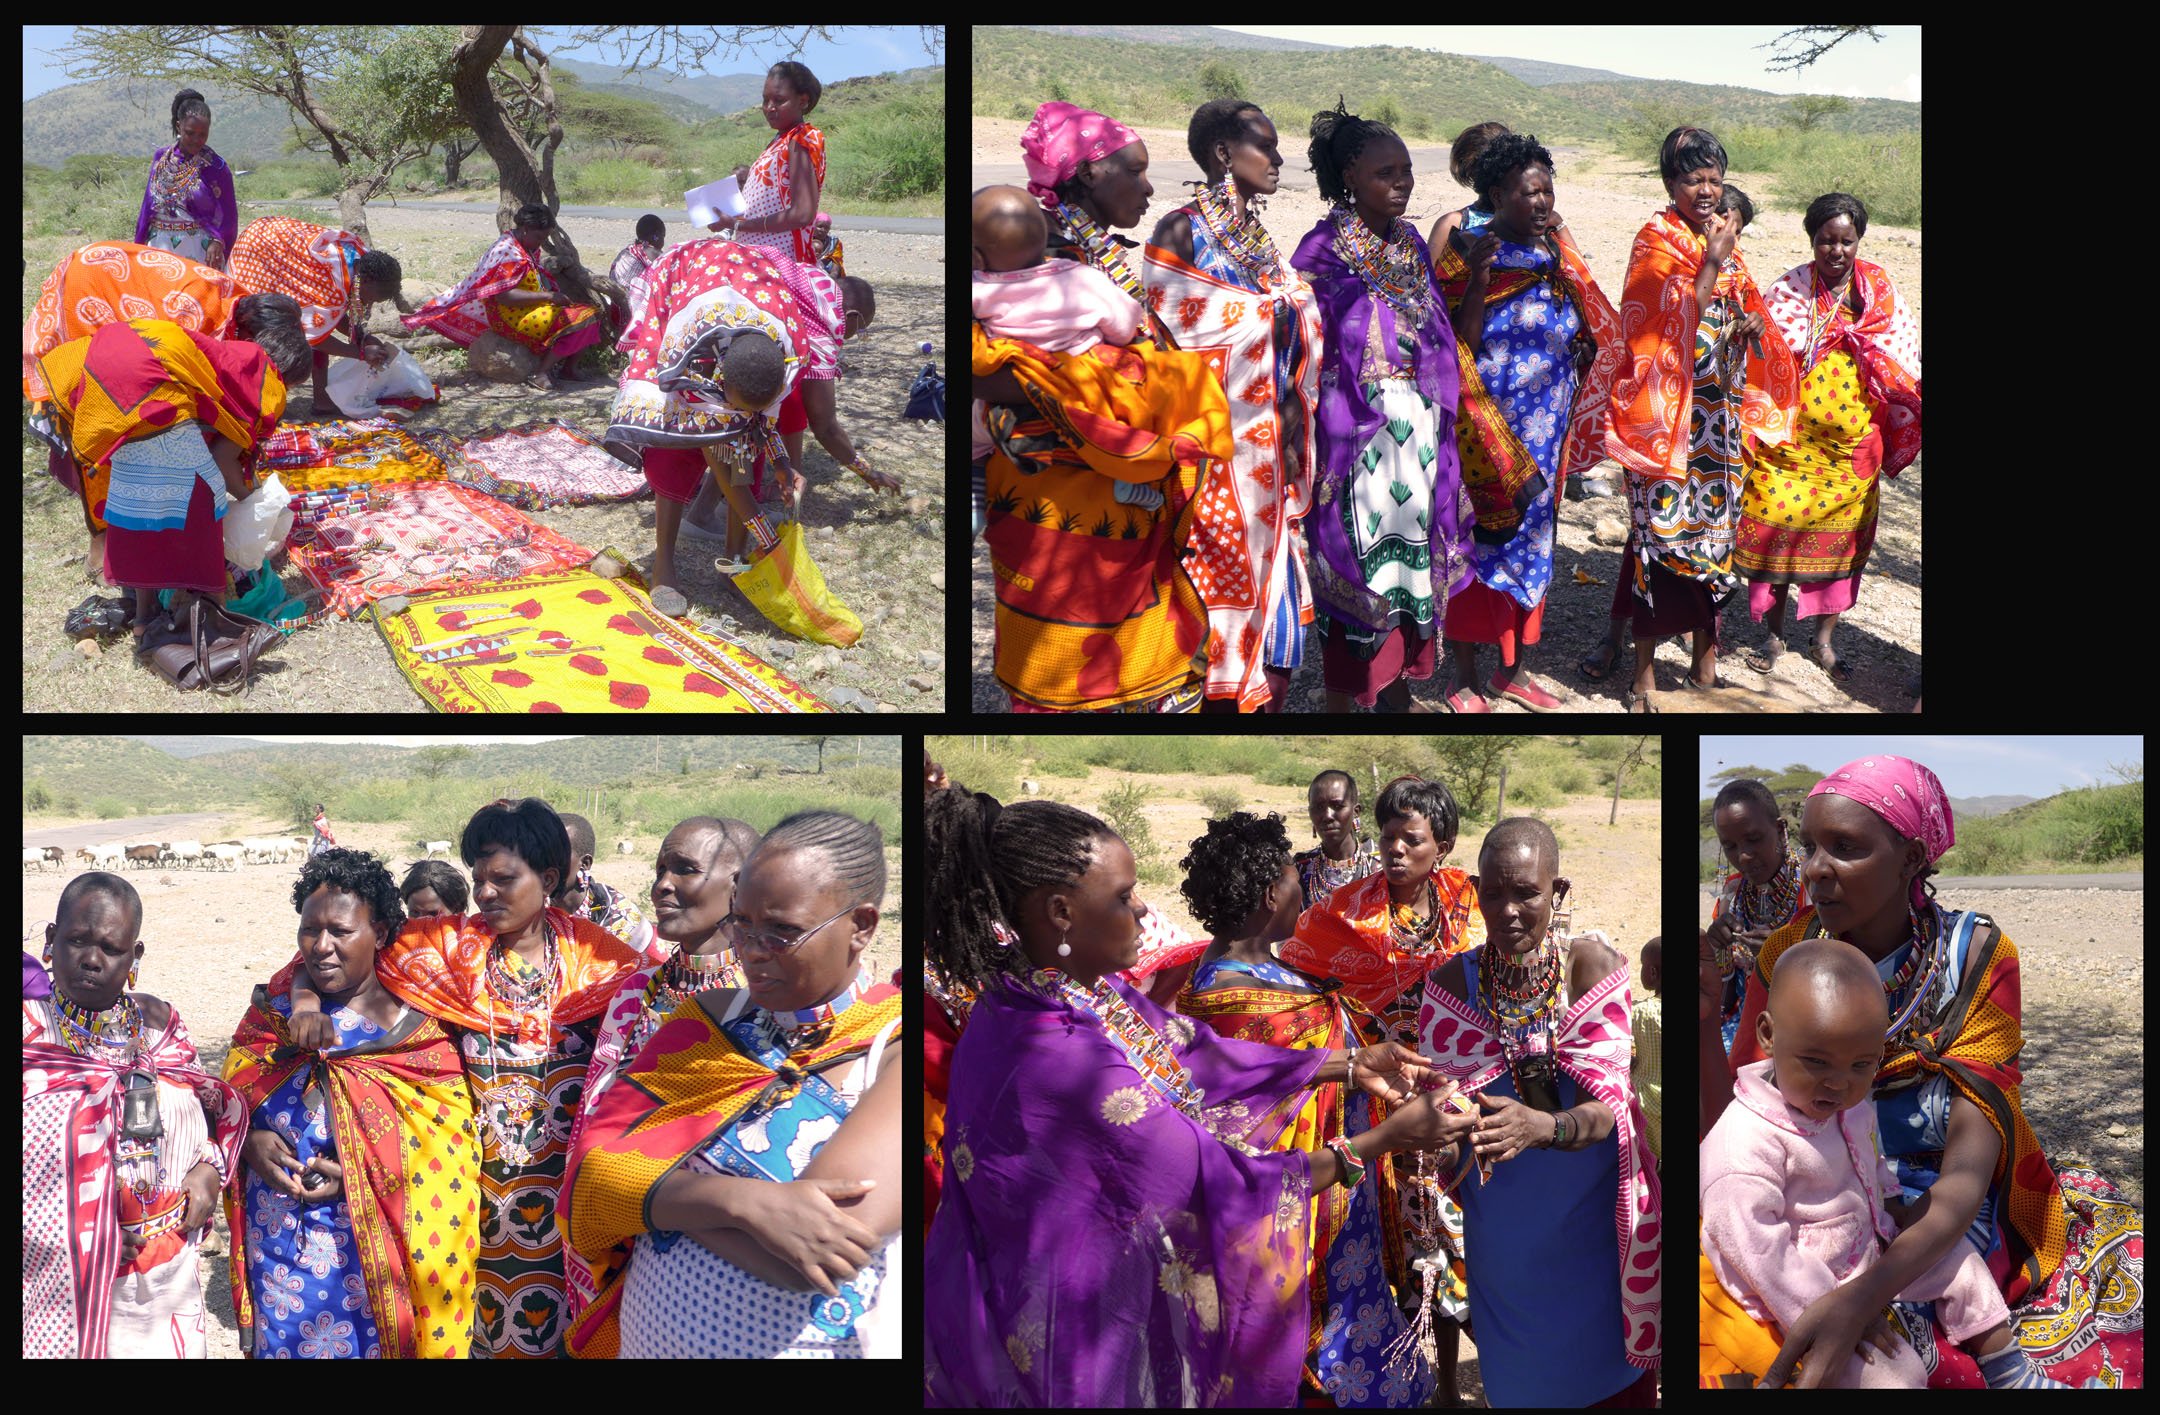 Maasai women in their colorful clothes